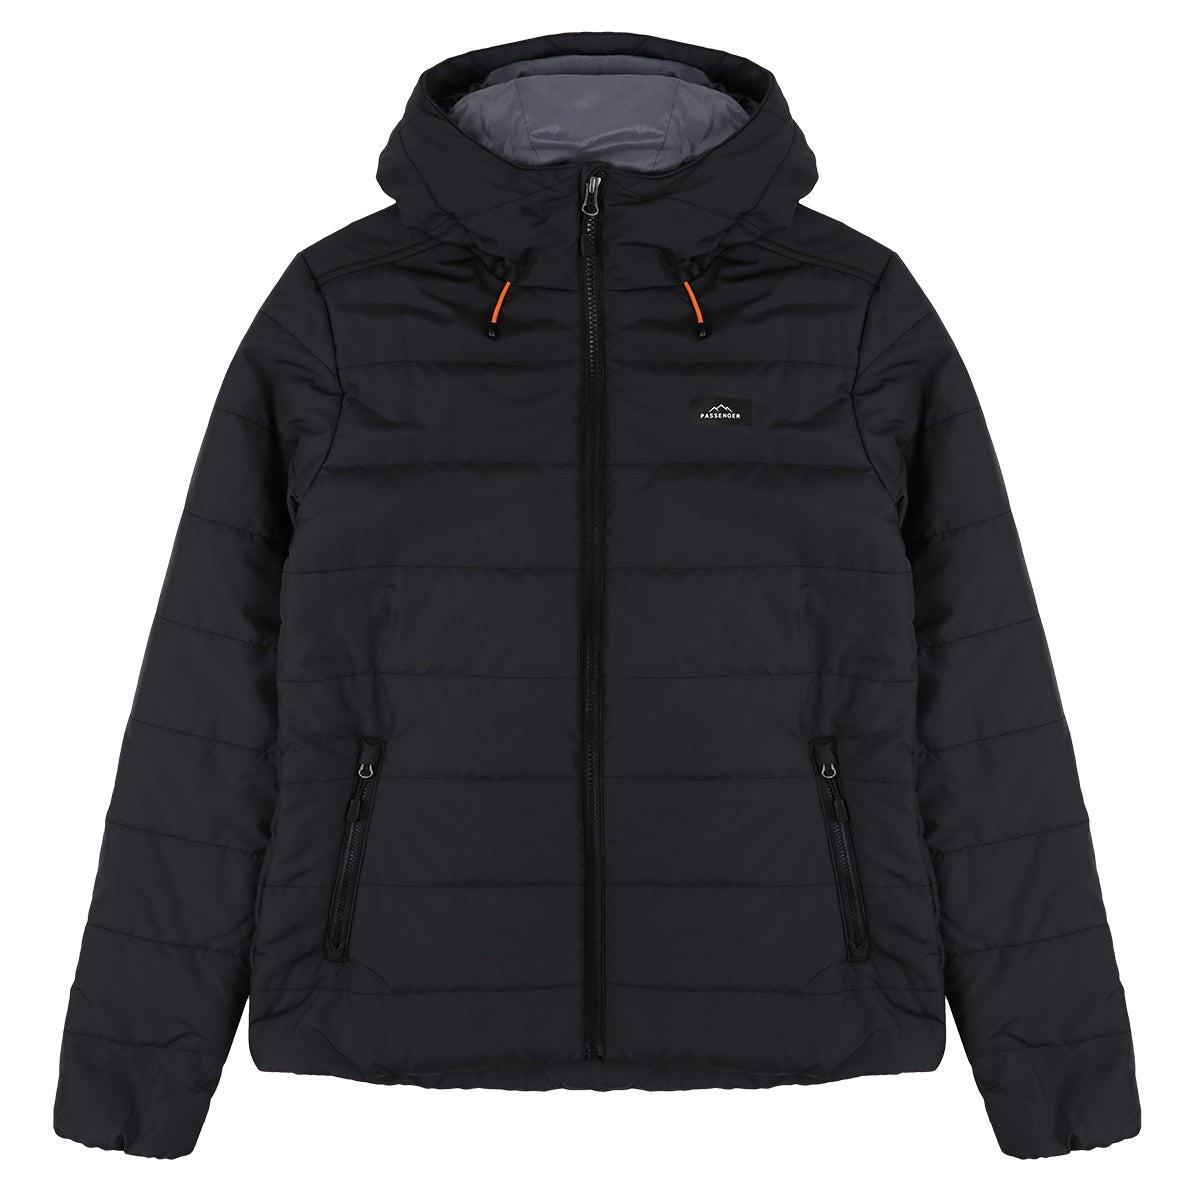 Jackpine Insulated Jacket - Black image 6